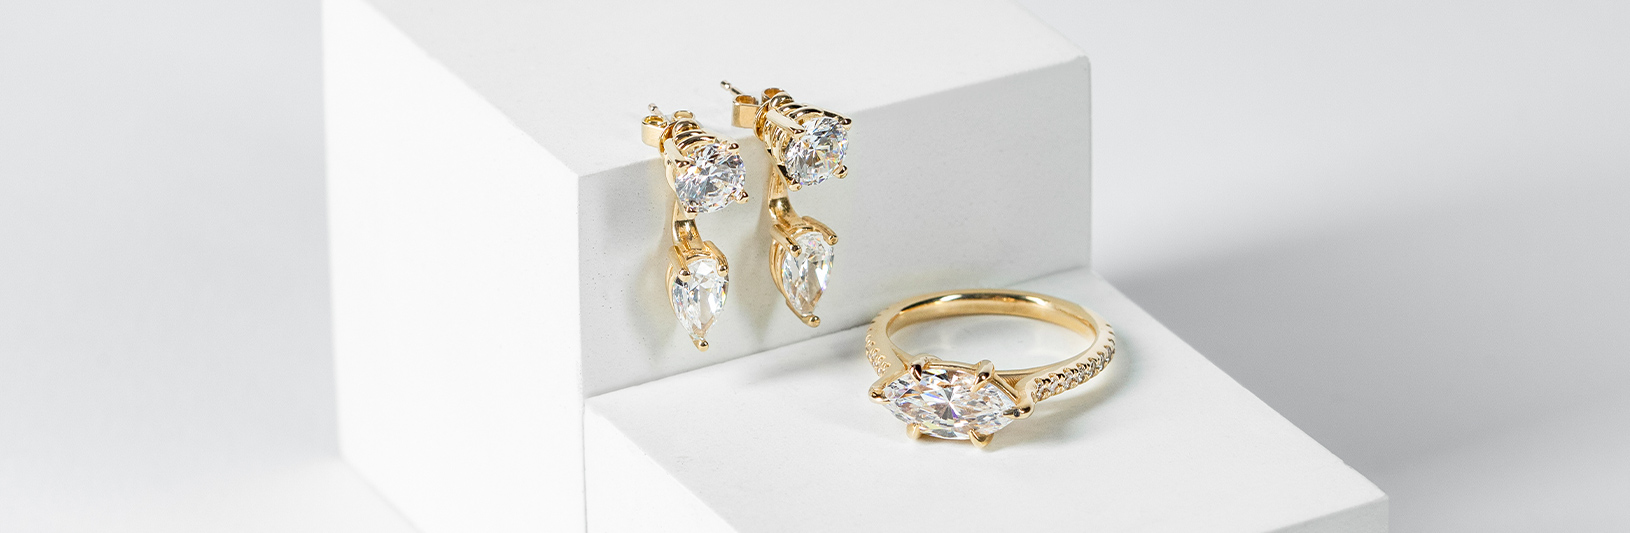 Yellow gold drop earrings and a yellow gold ring with a marquise stone